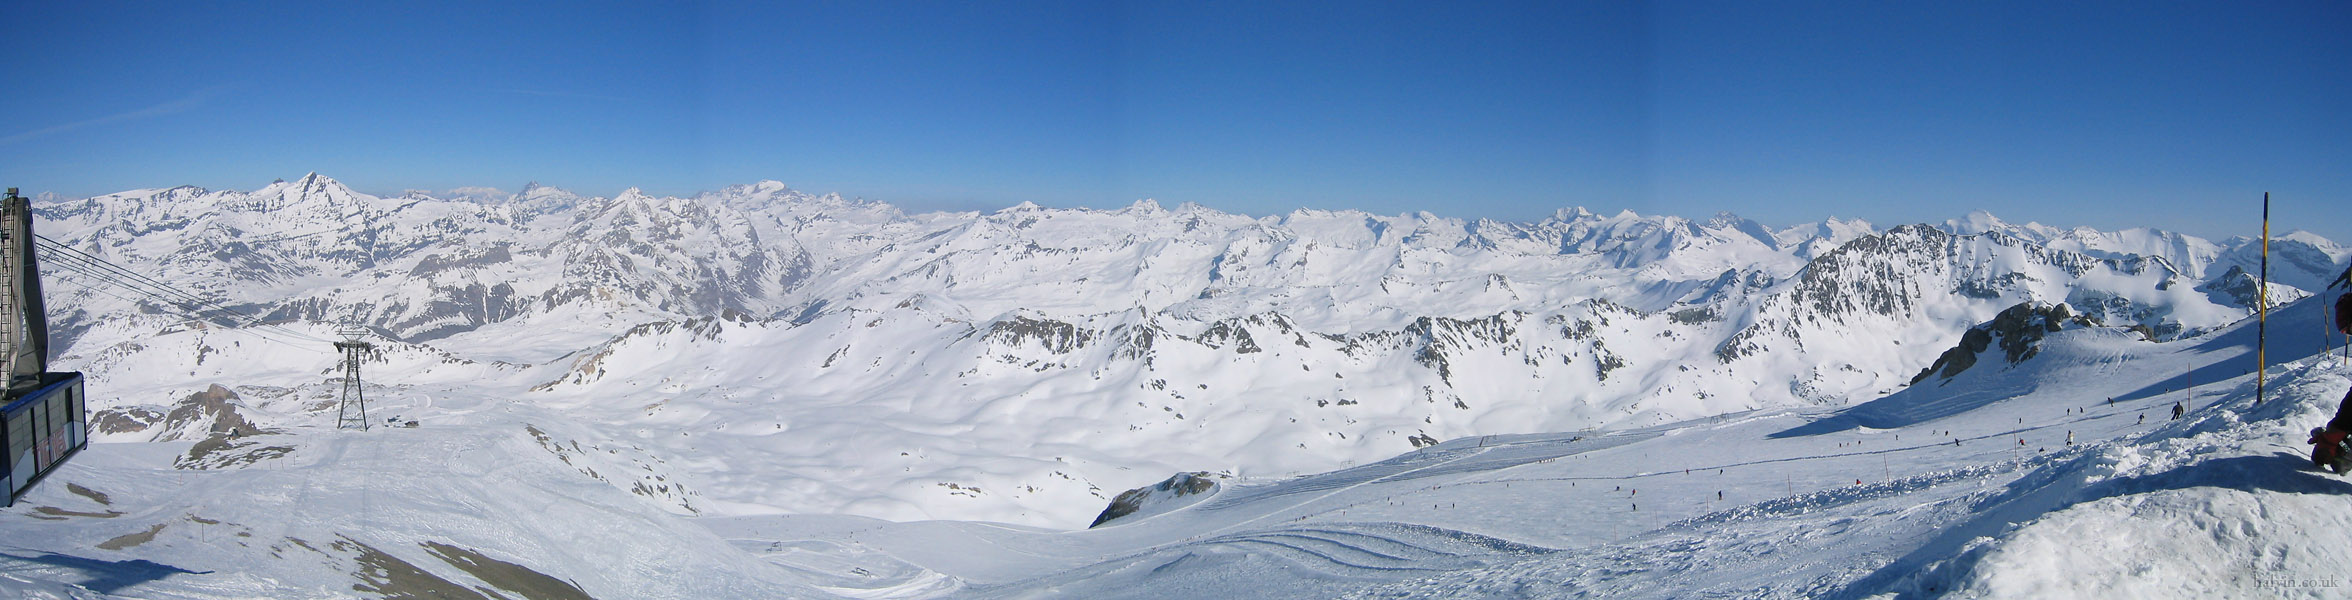 Tignes 2003 - Panorama from the top of La Grande Motte.